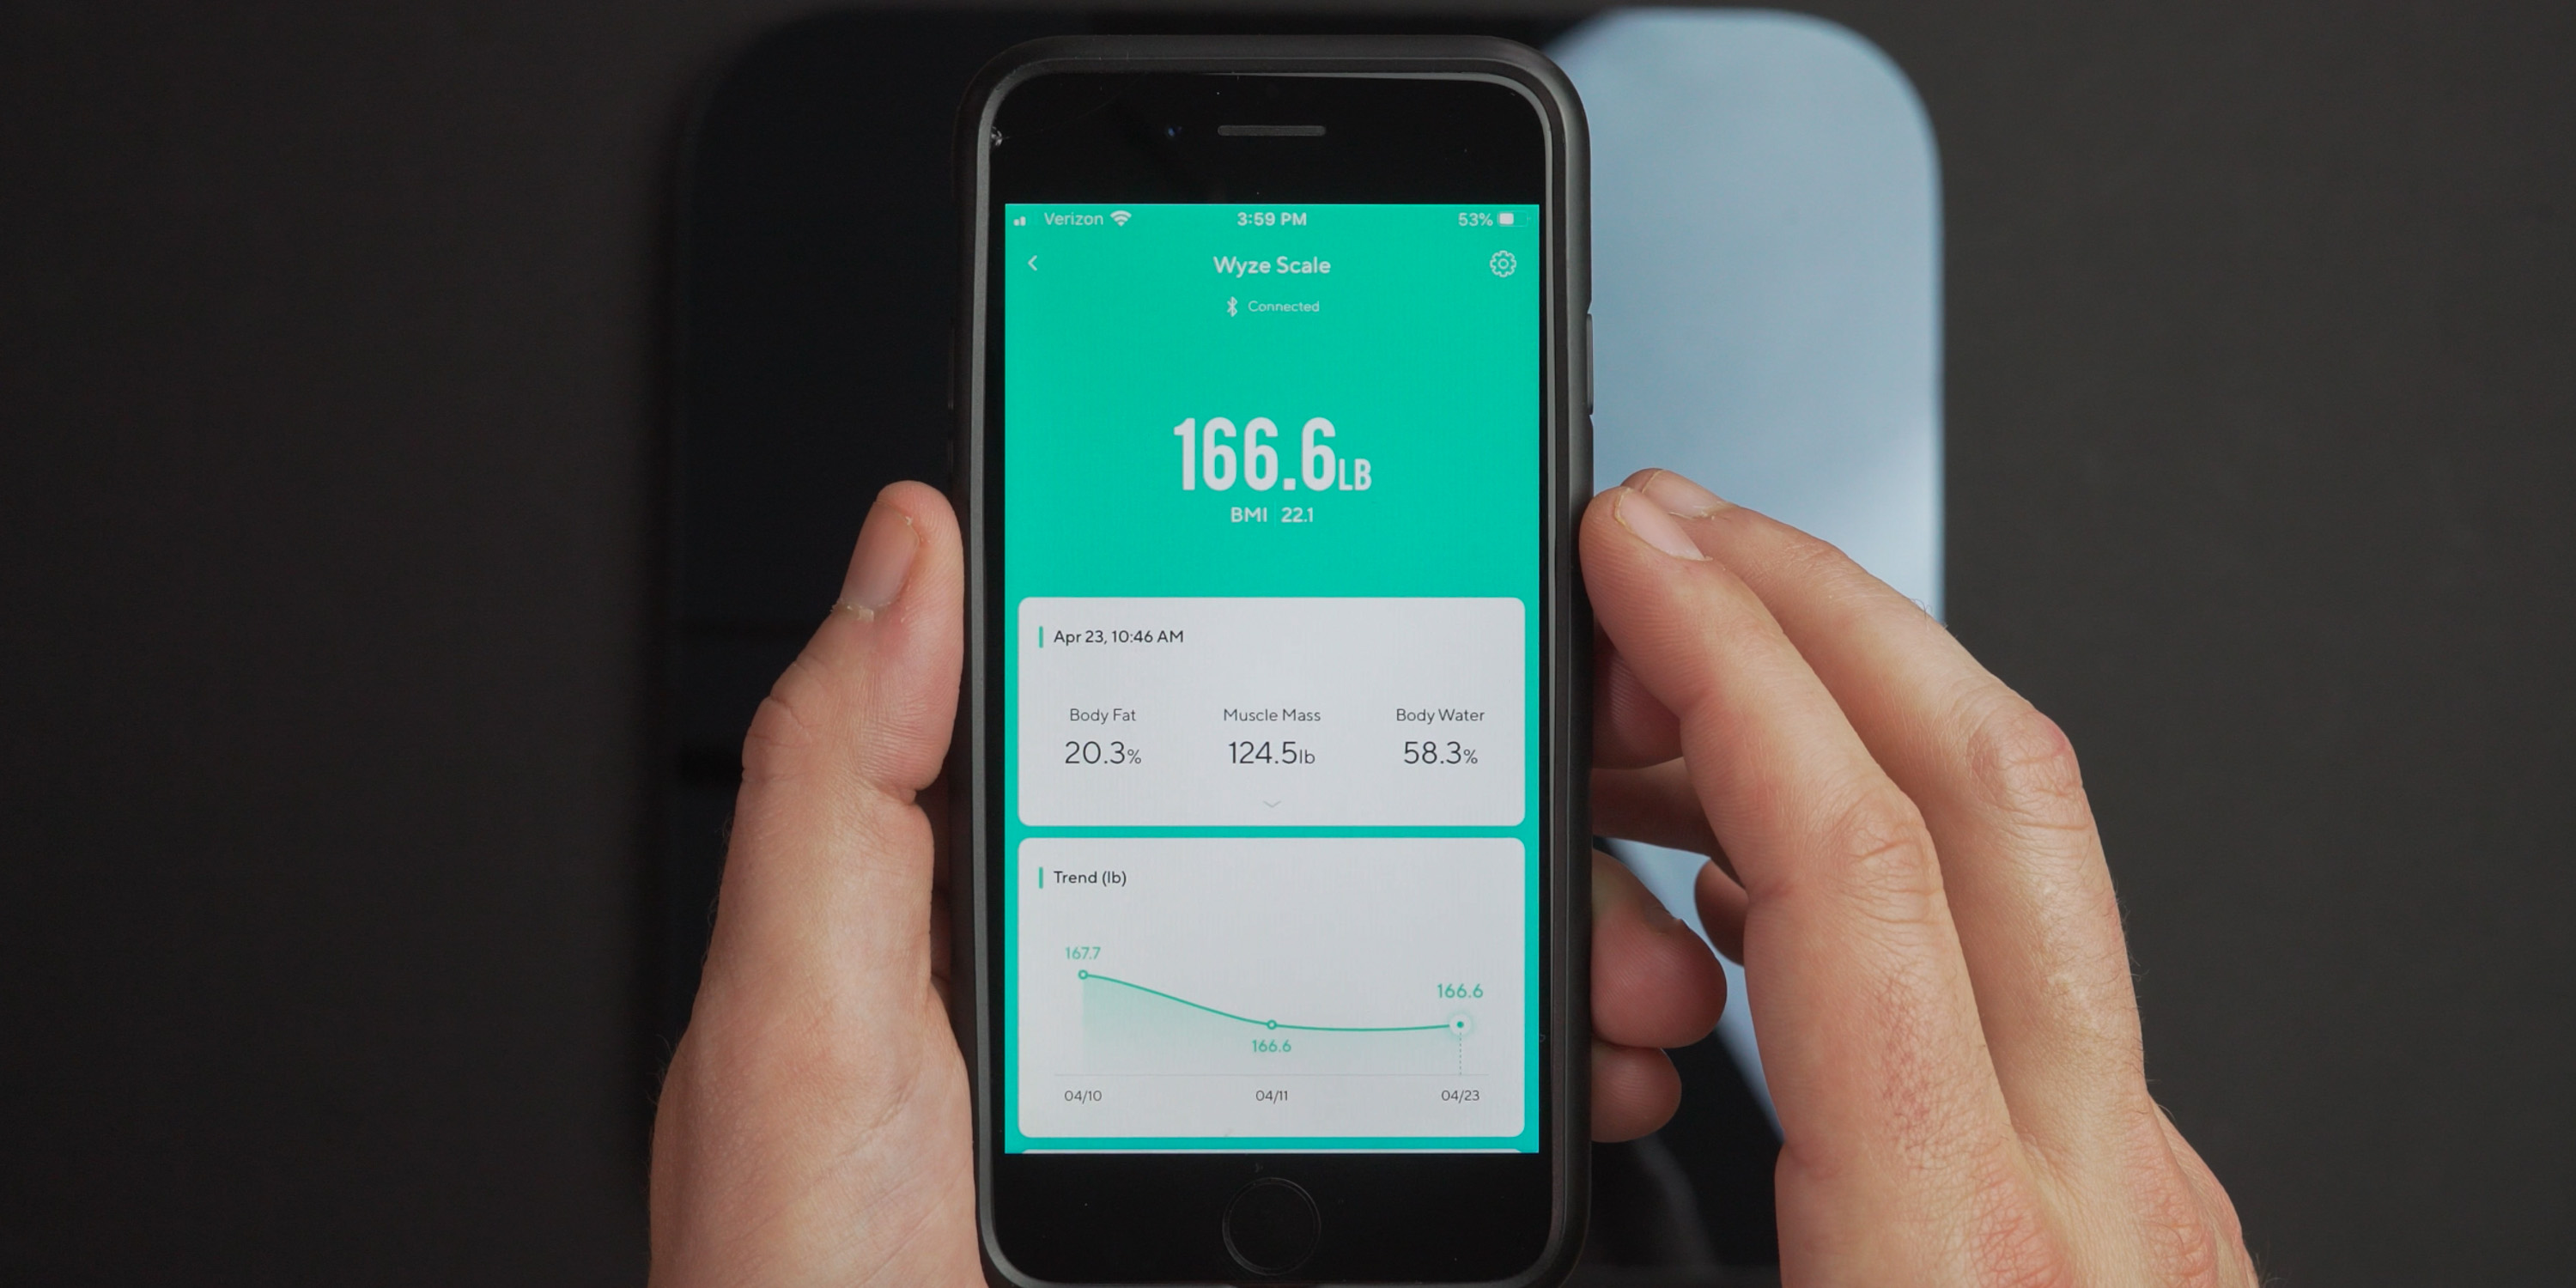 Checking stats in the Wyze App